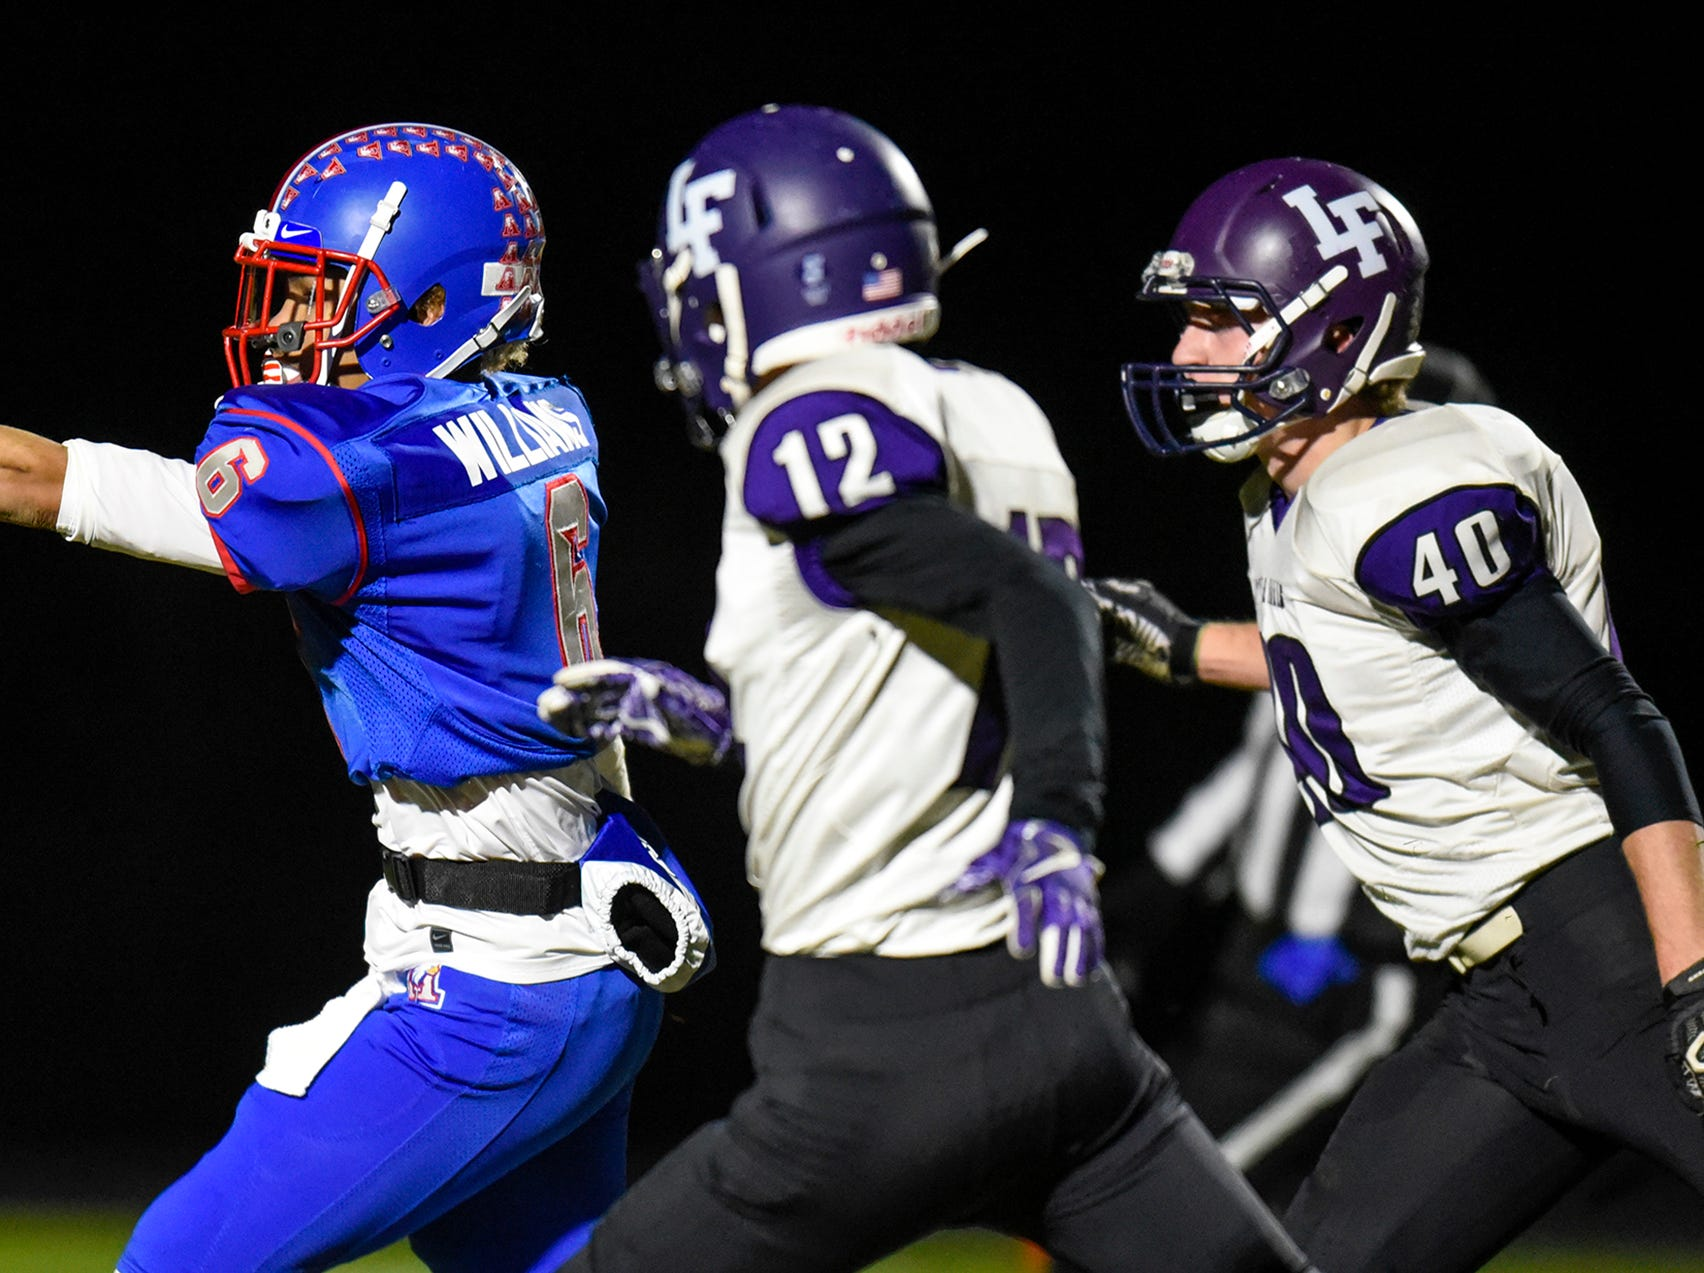 Apollo's Jalyn Williams stretches the ball across the goal line for a touchdown during the Tuesday, Oct. 23, game against Little Falls in St. Cloud.